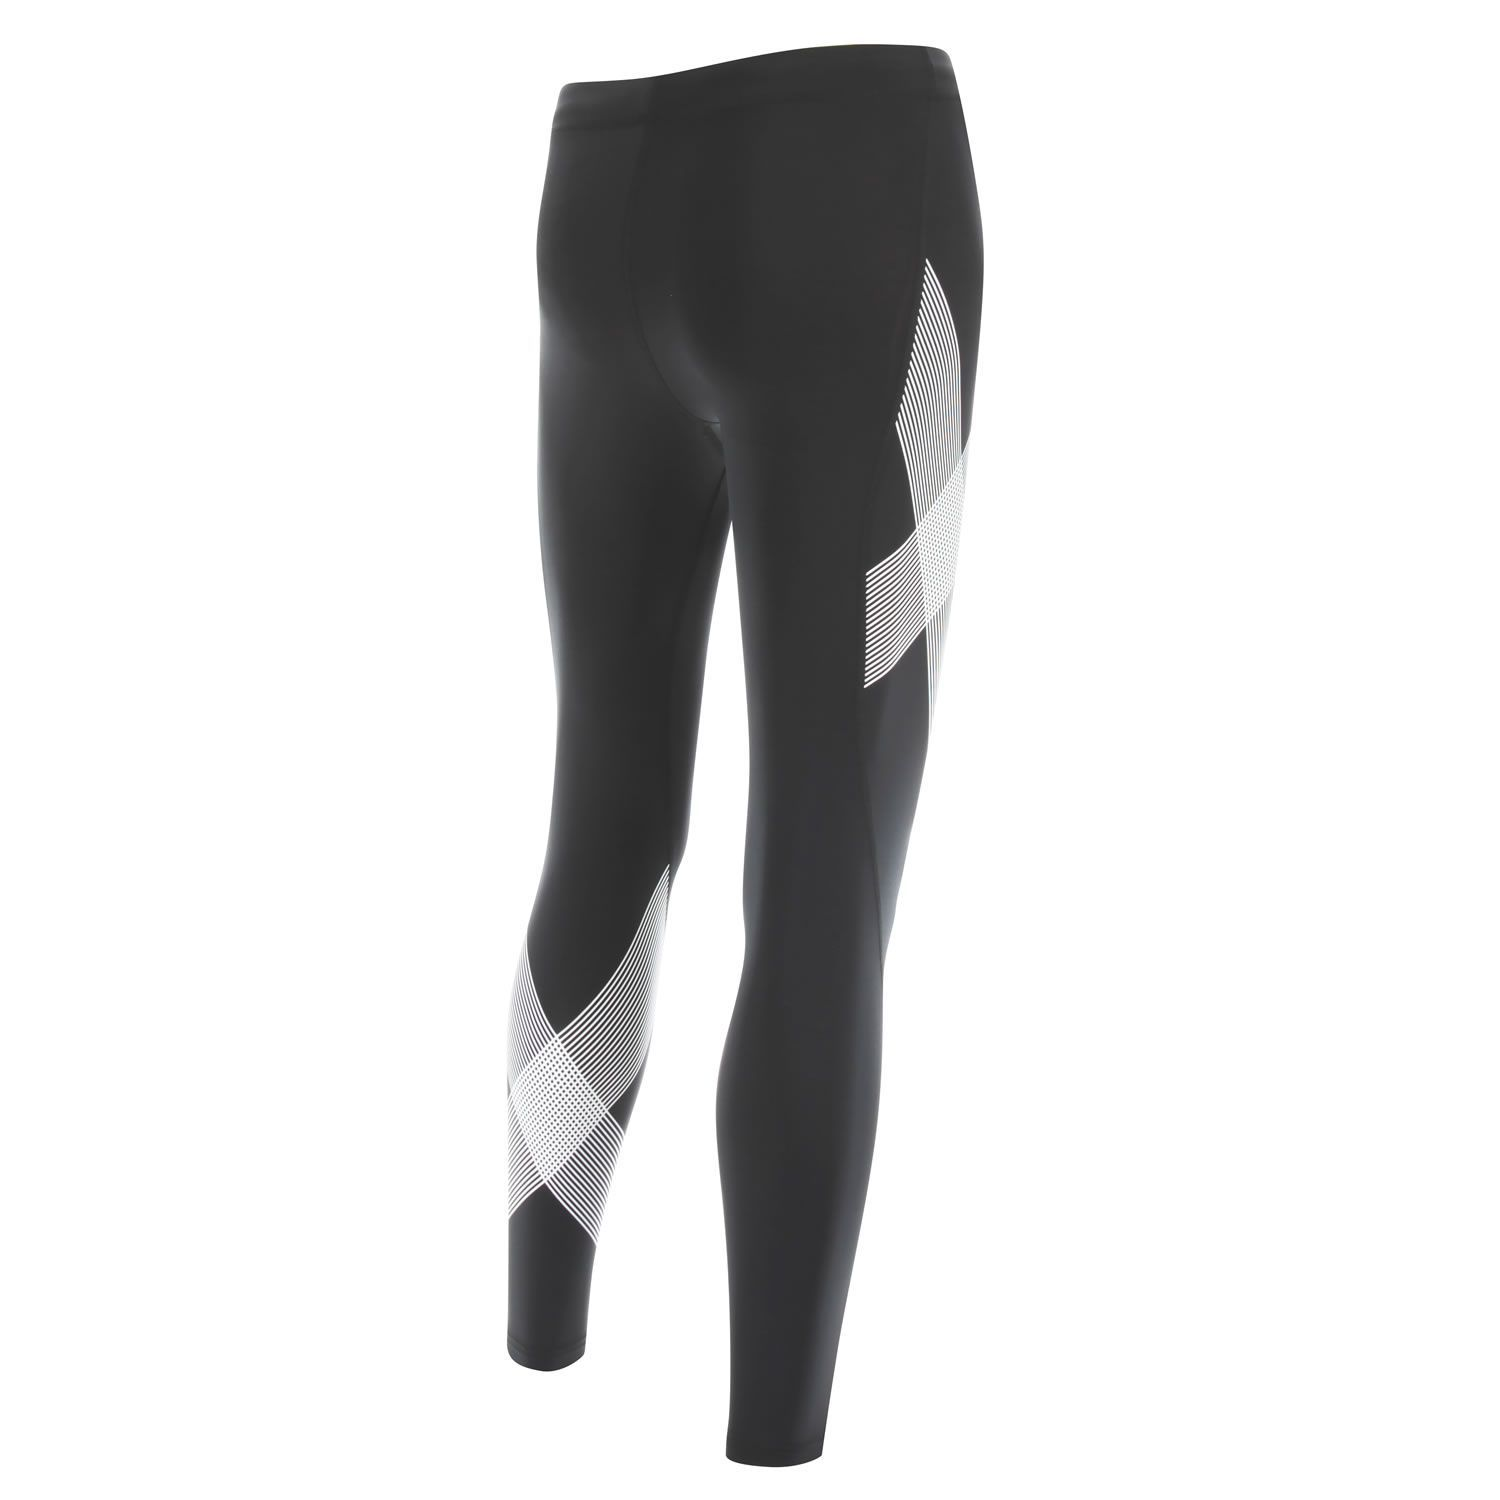 PANTALONI 2XU WOMEN COMPRESSION TIGHTS WA4173B BLK SWT REAR.jpg